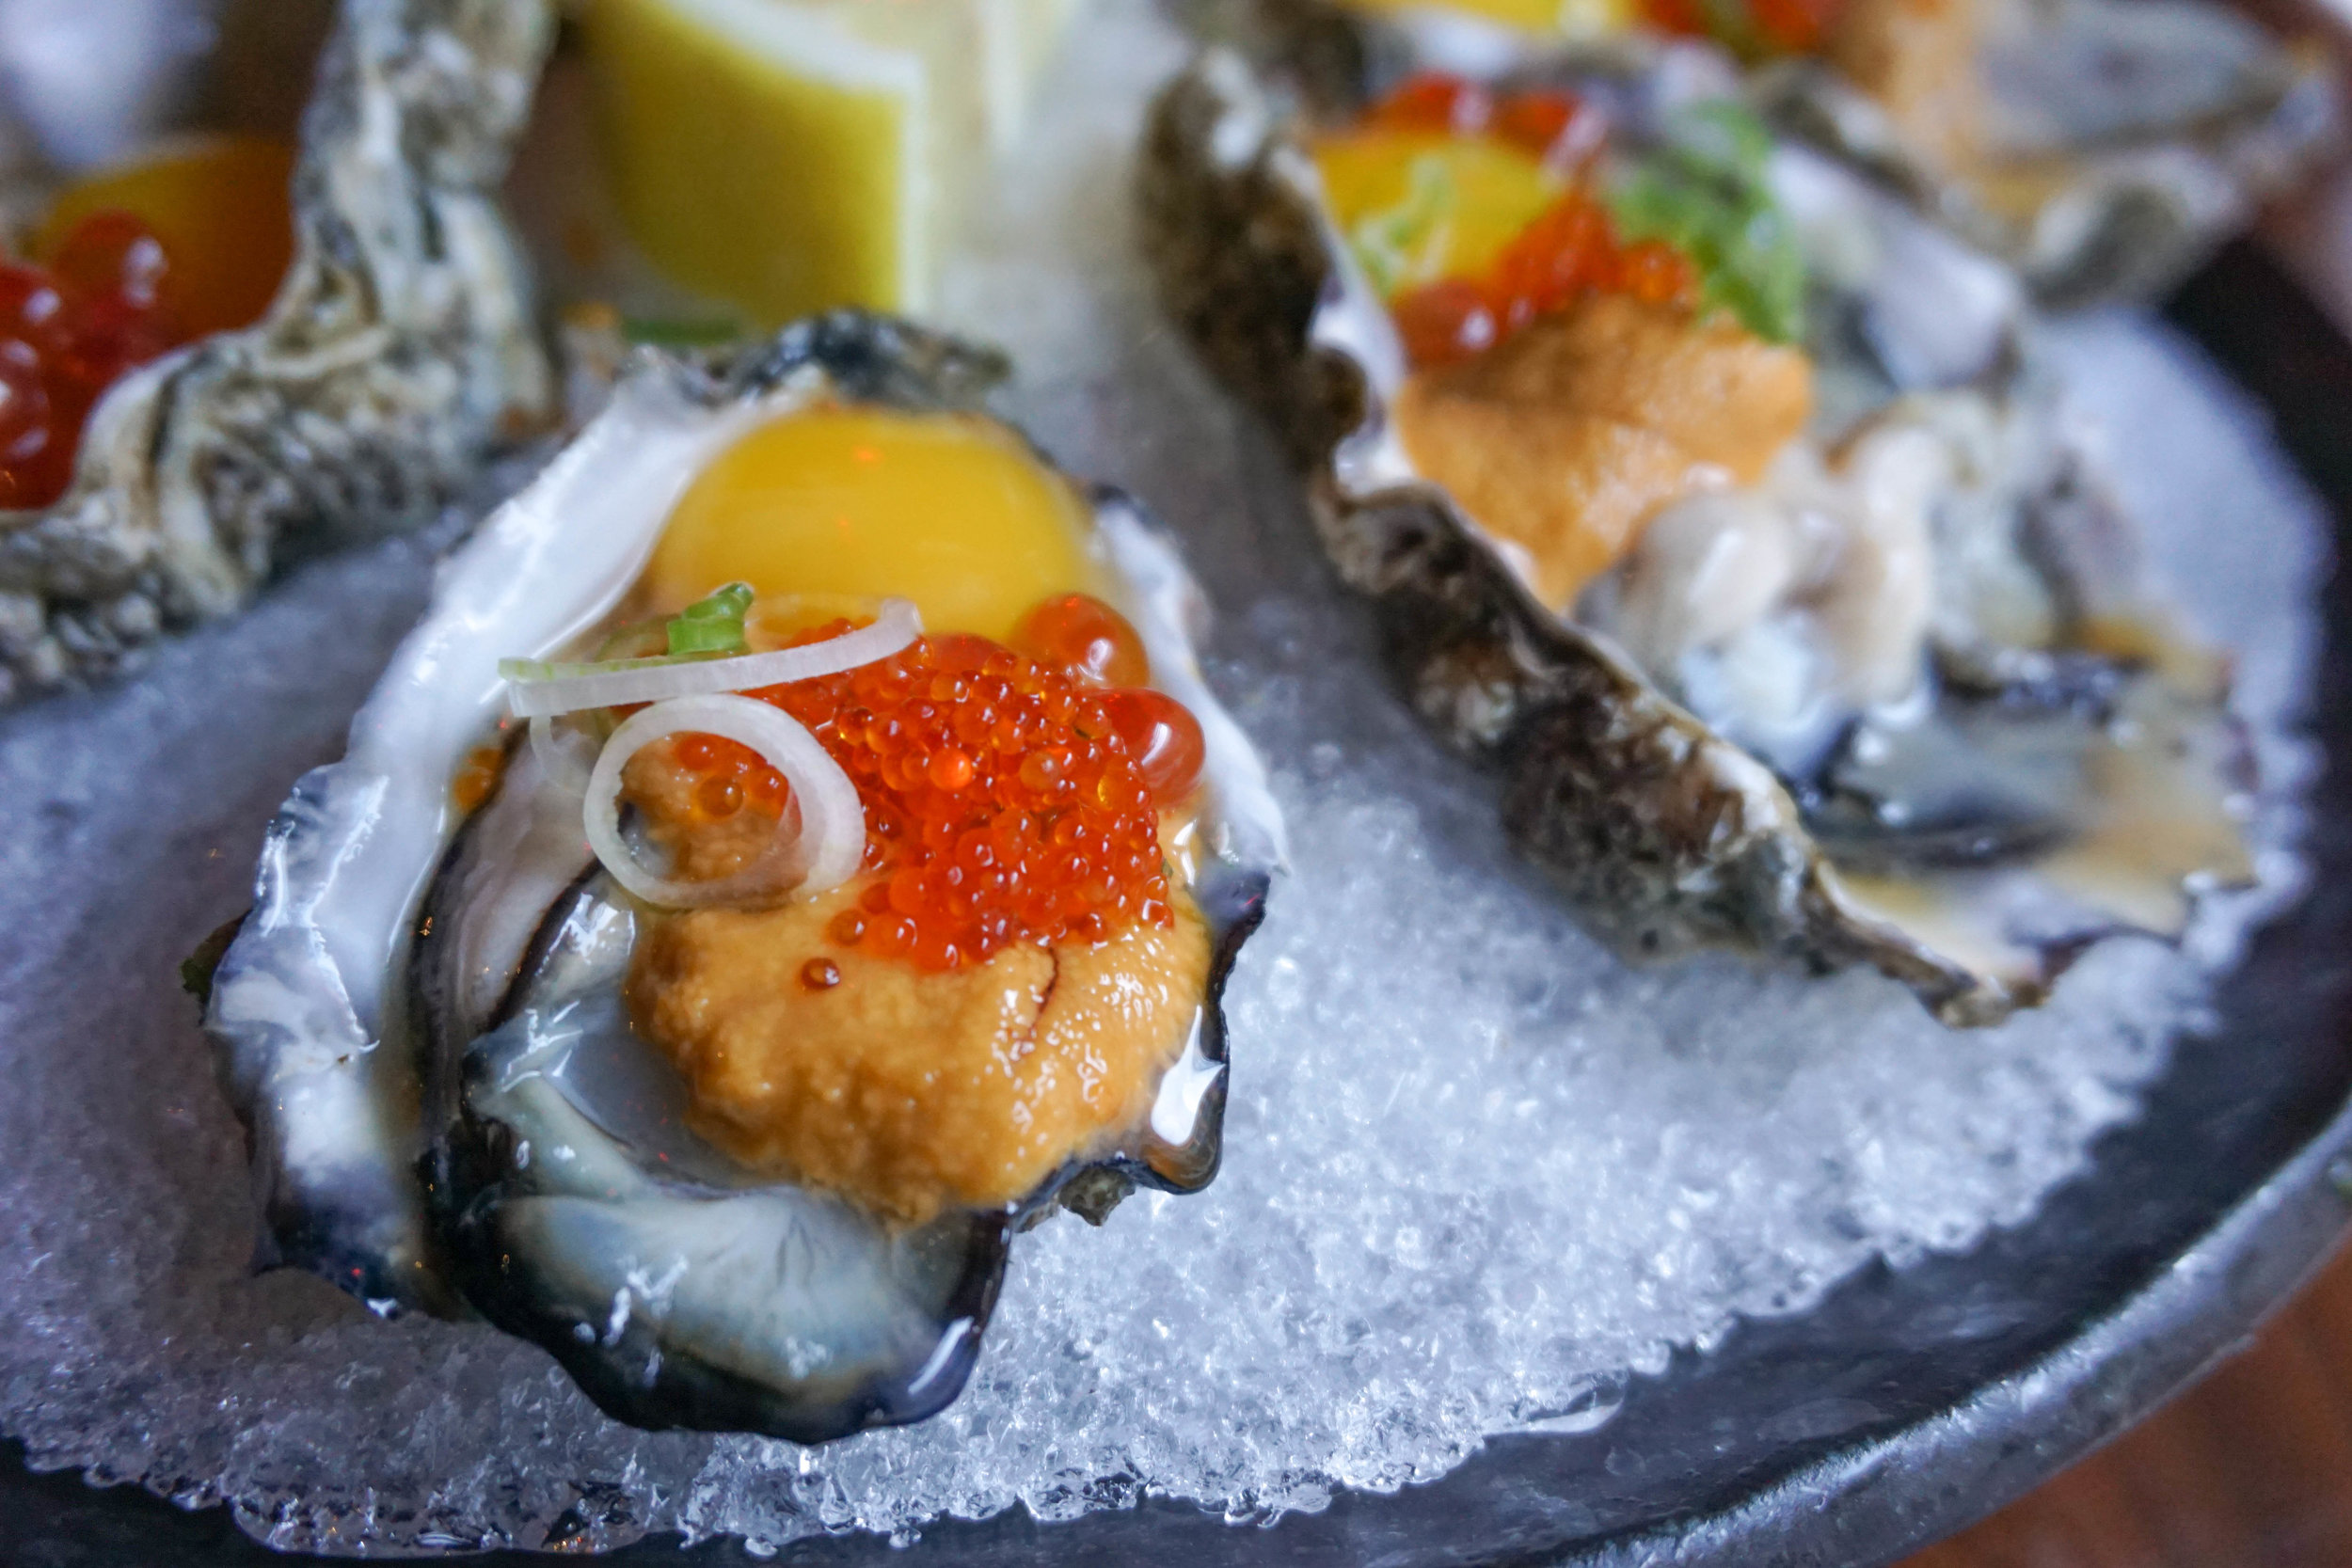 These oysters came with quail egg and roe—so good!